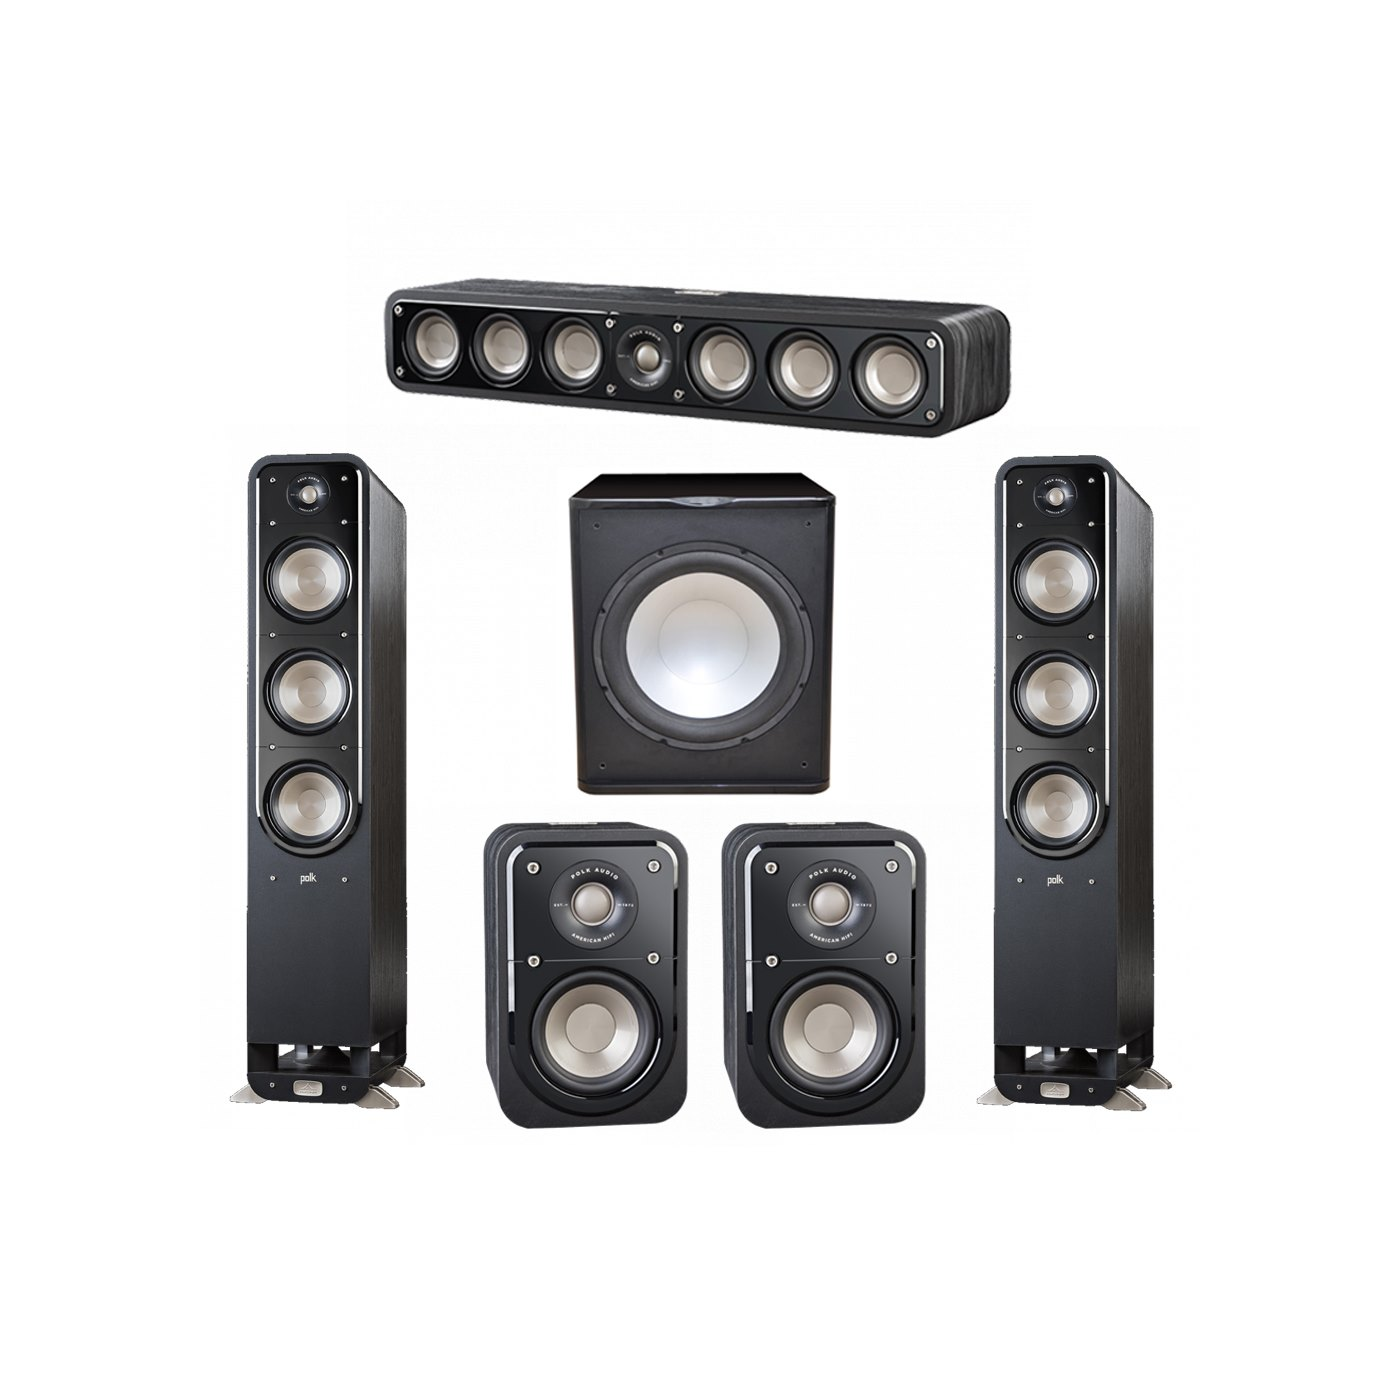 Polk Audio Signature 5.1 System with 2 S60 Tower Speaker, 1 Polk S35 Center Speaker, 2 Polk S10 Surround Speaker, 1 Premier Acoustic PA-150 Powered Subwoofer